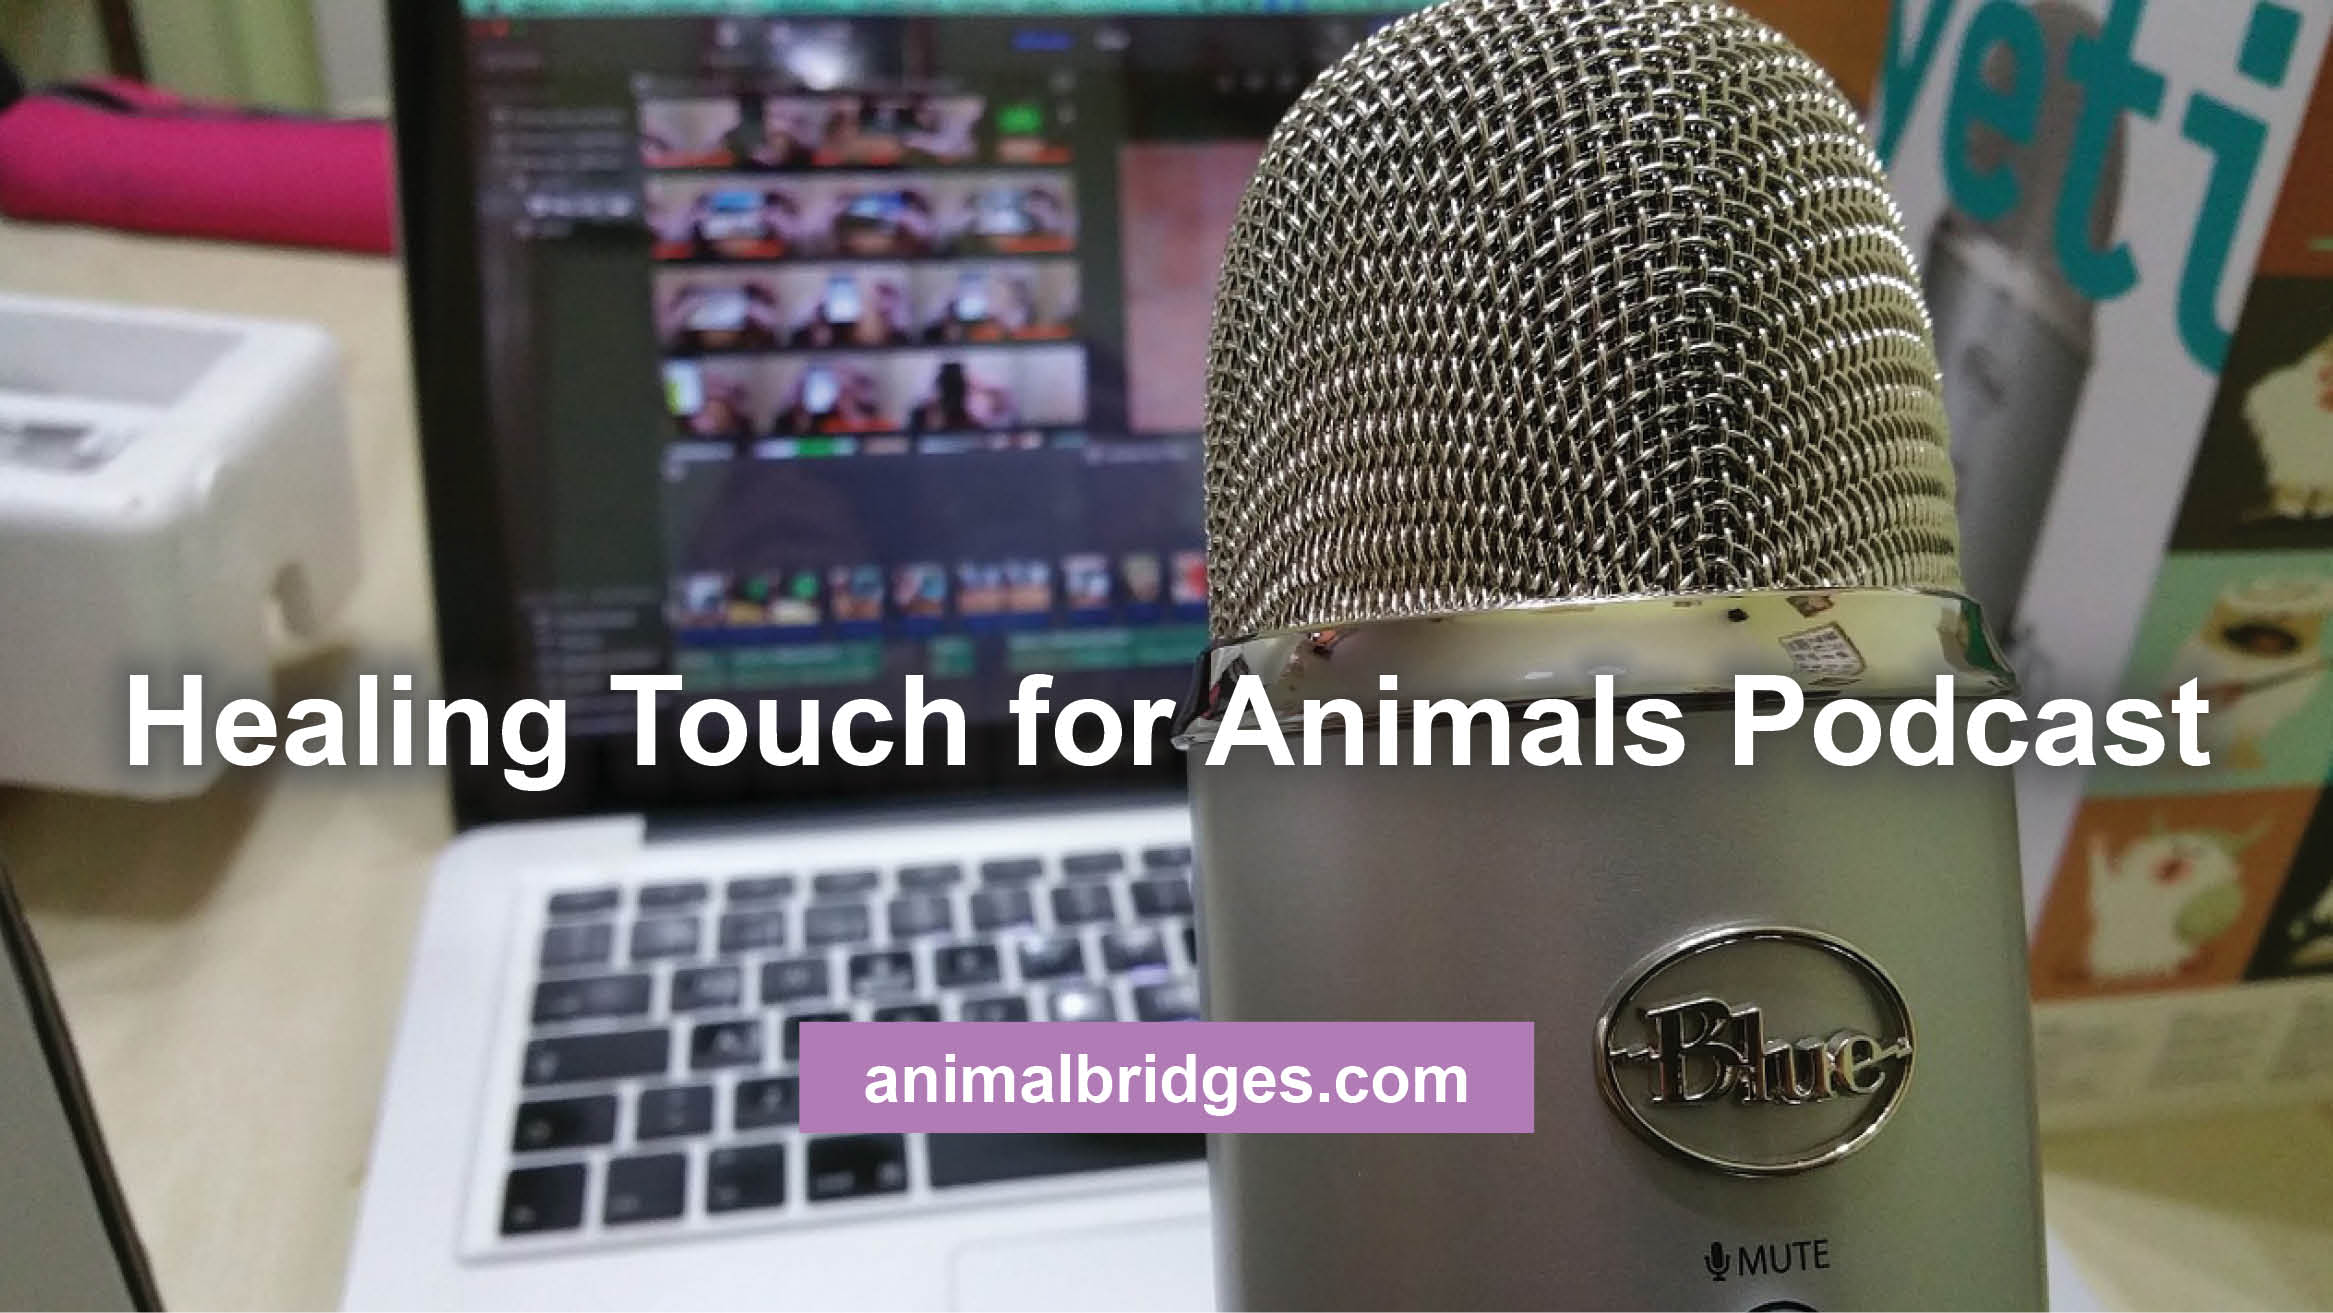 Healing Touch for Animals Podcast